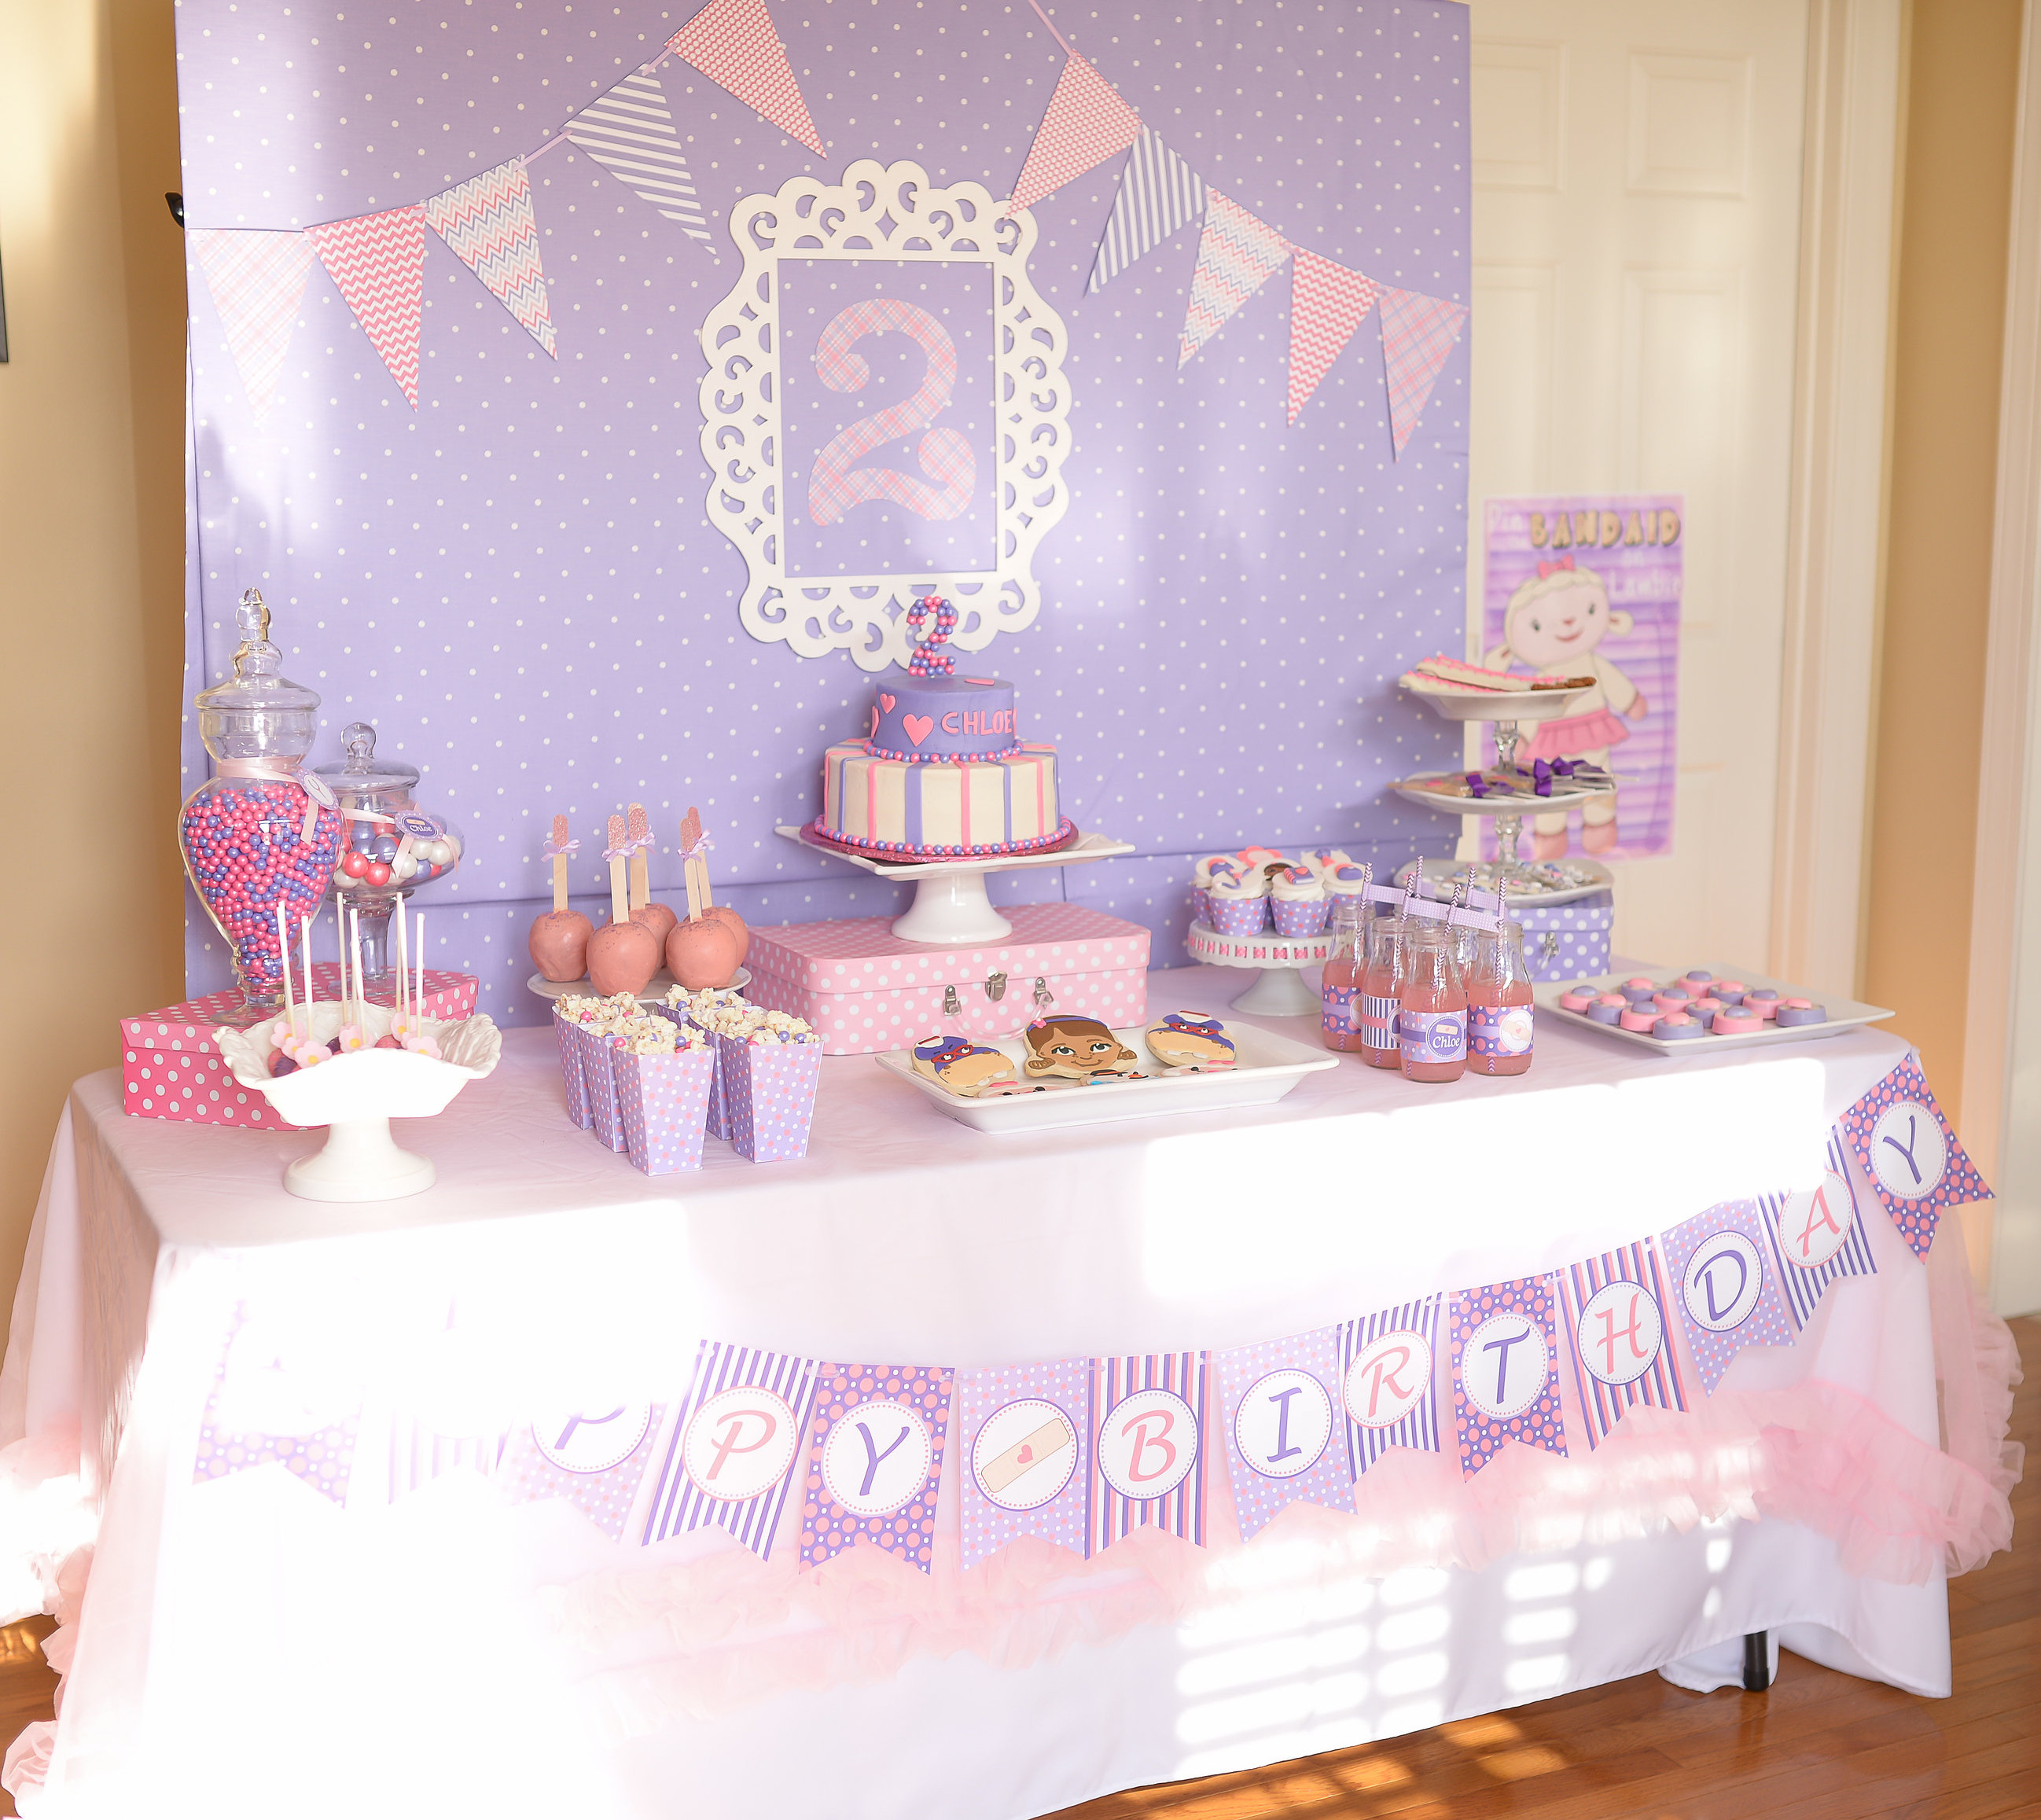 Darling Doc Mcstuffins 2nd Birthday Sweetly Chic Events Design